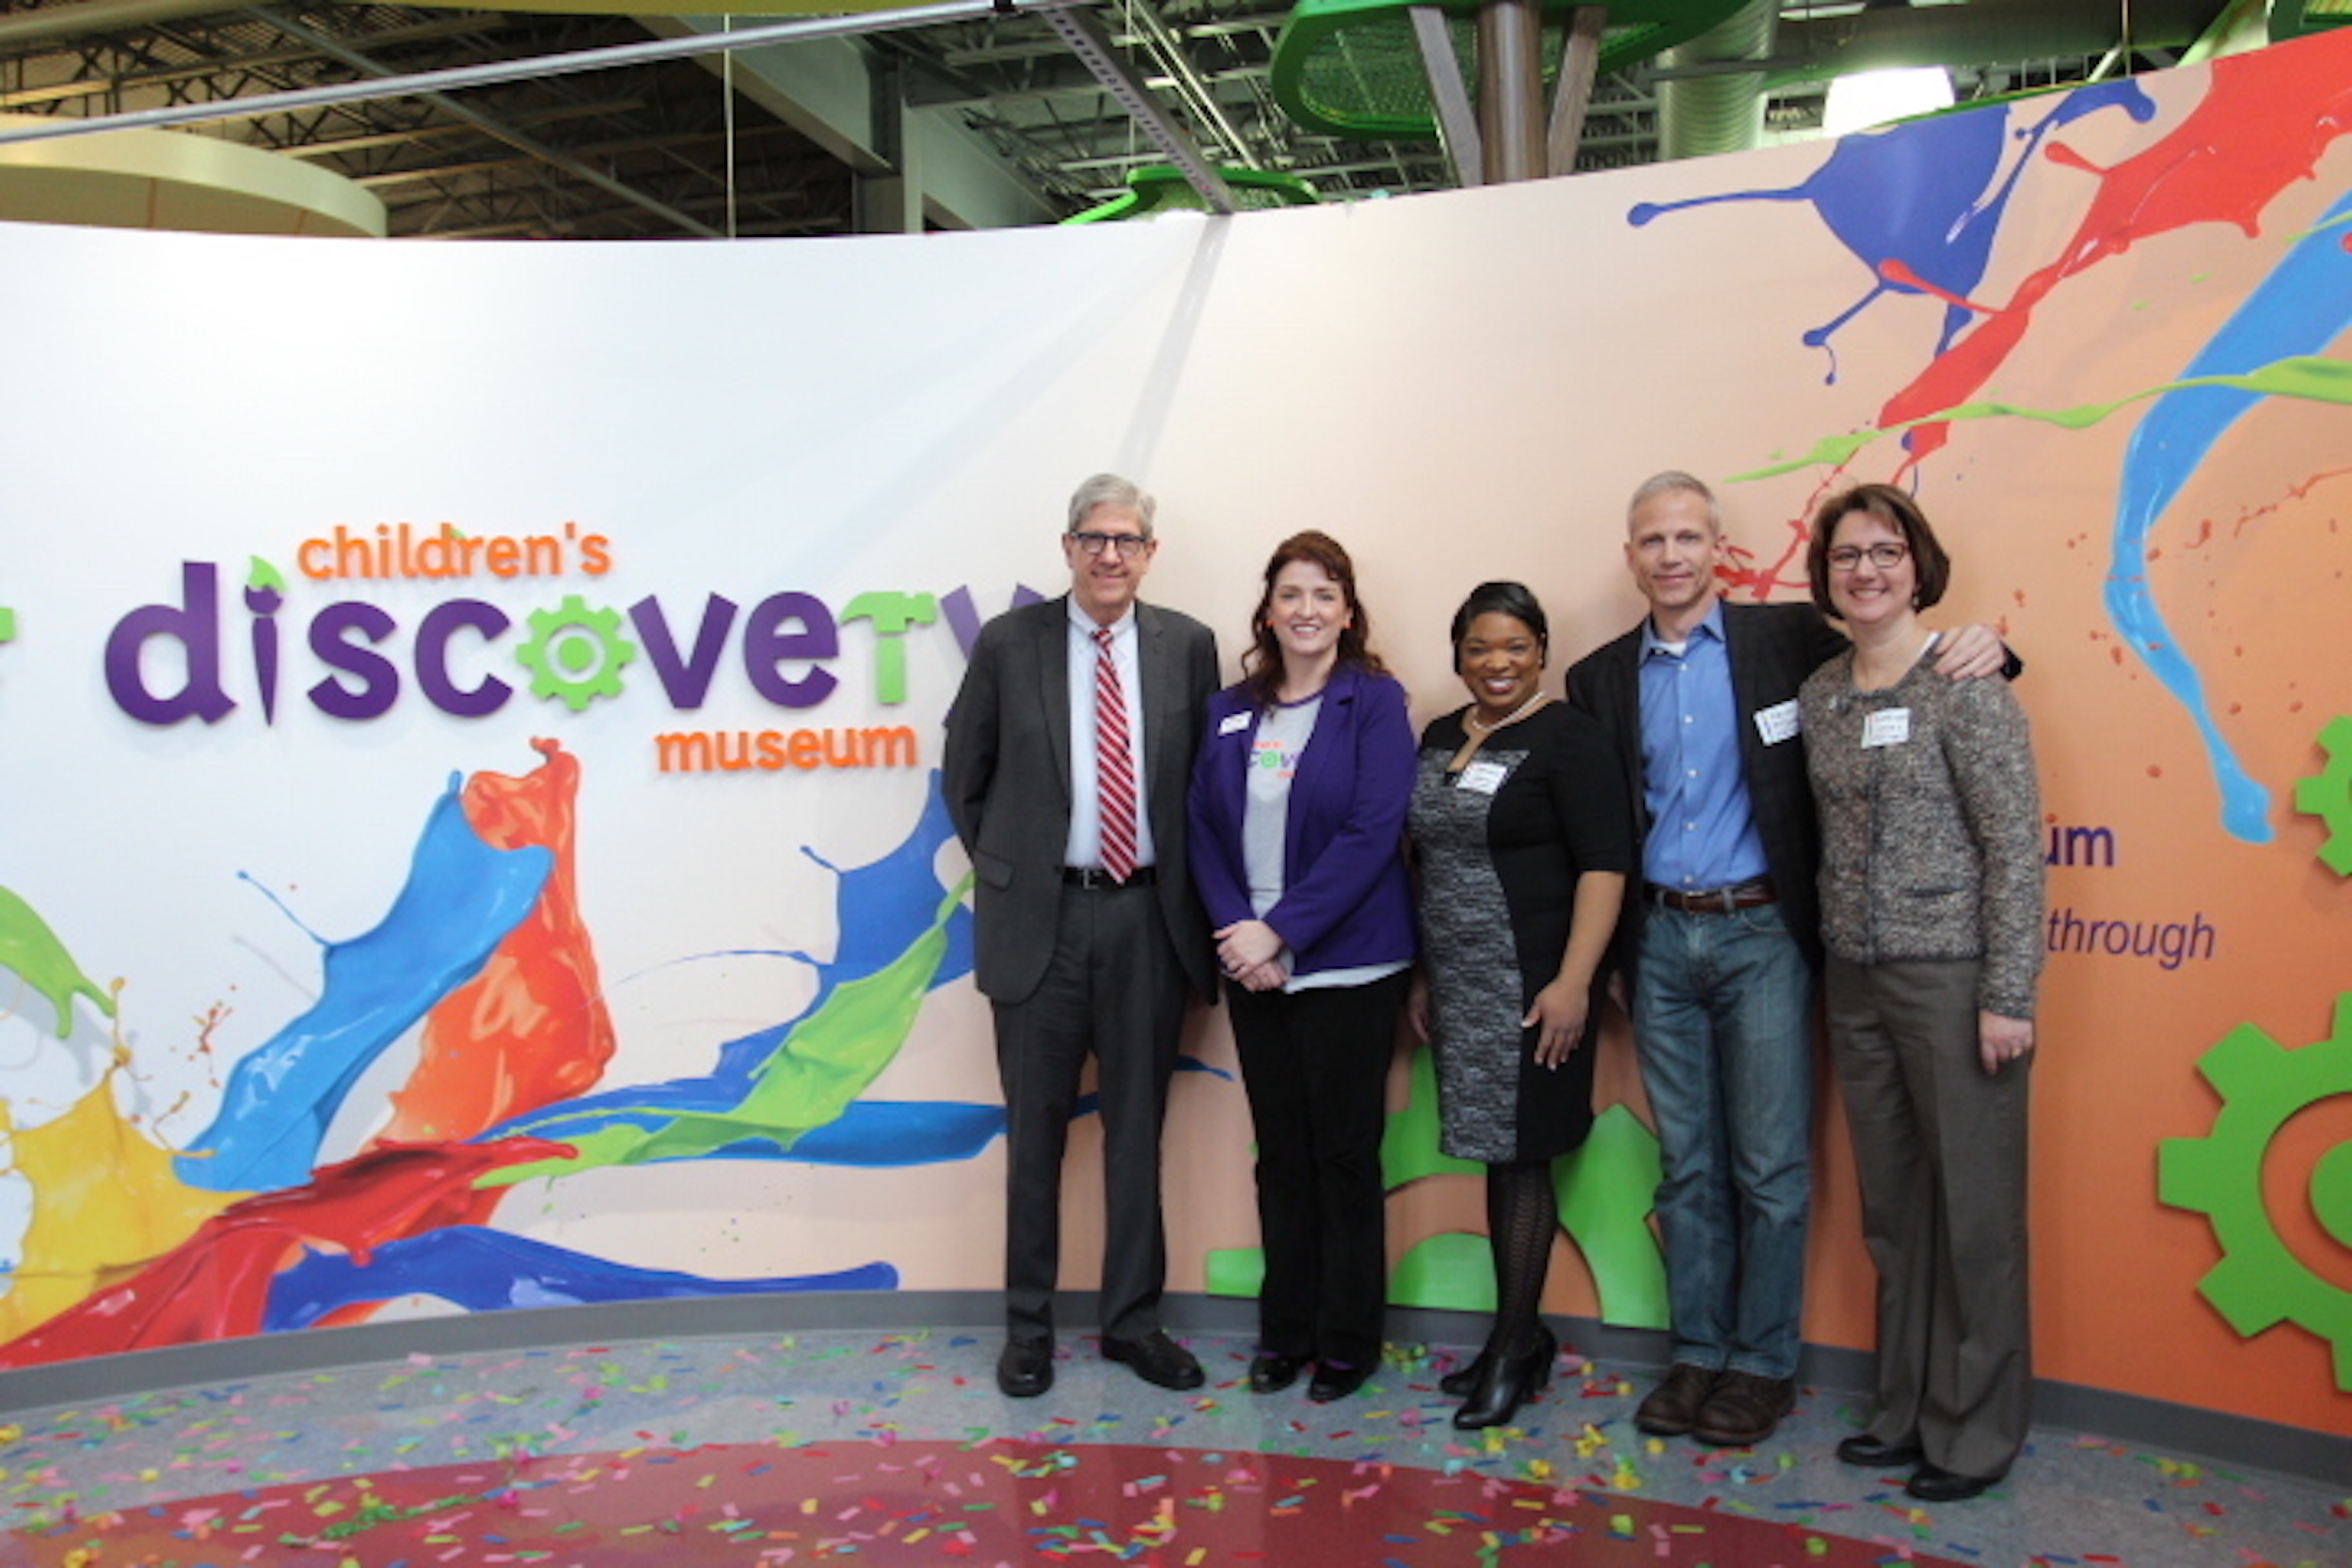 Town of Normal Mayor Chris Koos poses with CDM Director Beth Whisman and Town Council members Chemberly Cummings, Kevin McCarthy and Kathleen Lorenz at the Children's Discovery Museum's logo reveal Tuesday. (Image credit: CDM)